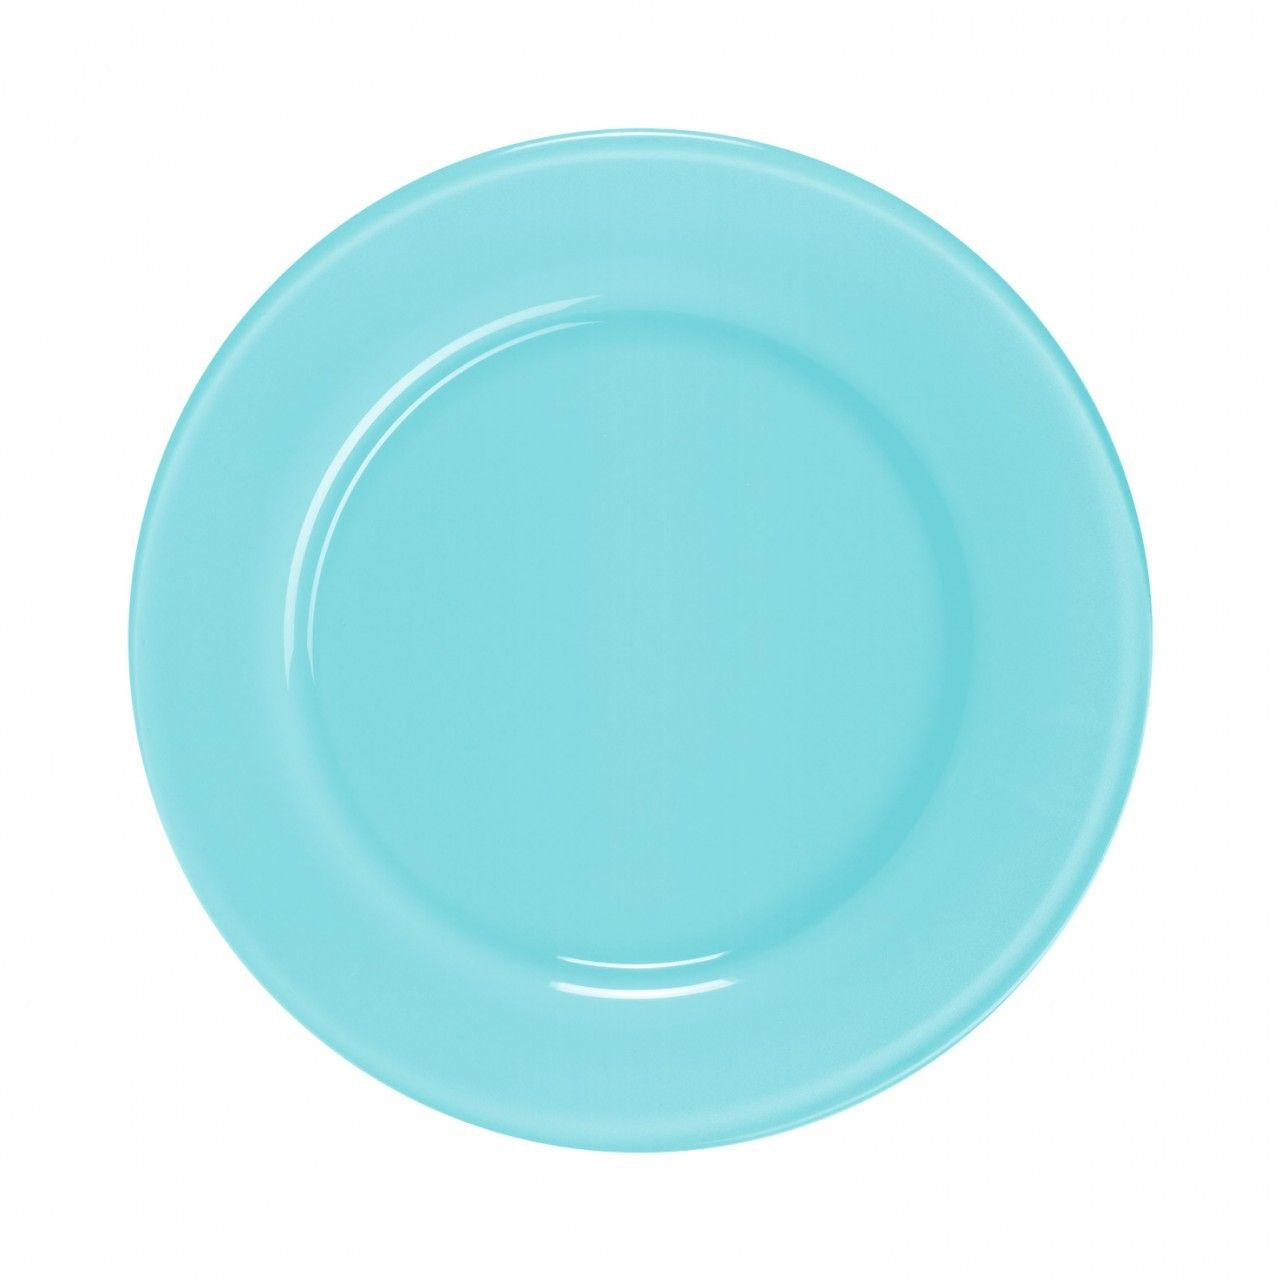 Specialty Housewares - Love Plates Carribean Blue 10  Set of 4 $54.99 (  sc 1 st  Pinterest & Specialty Housewares - Love Plates Carribean Blue 10